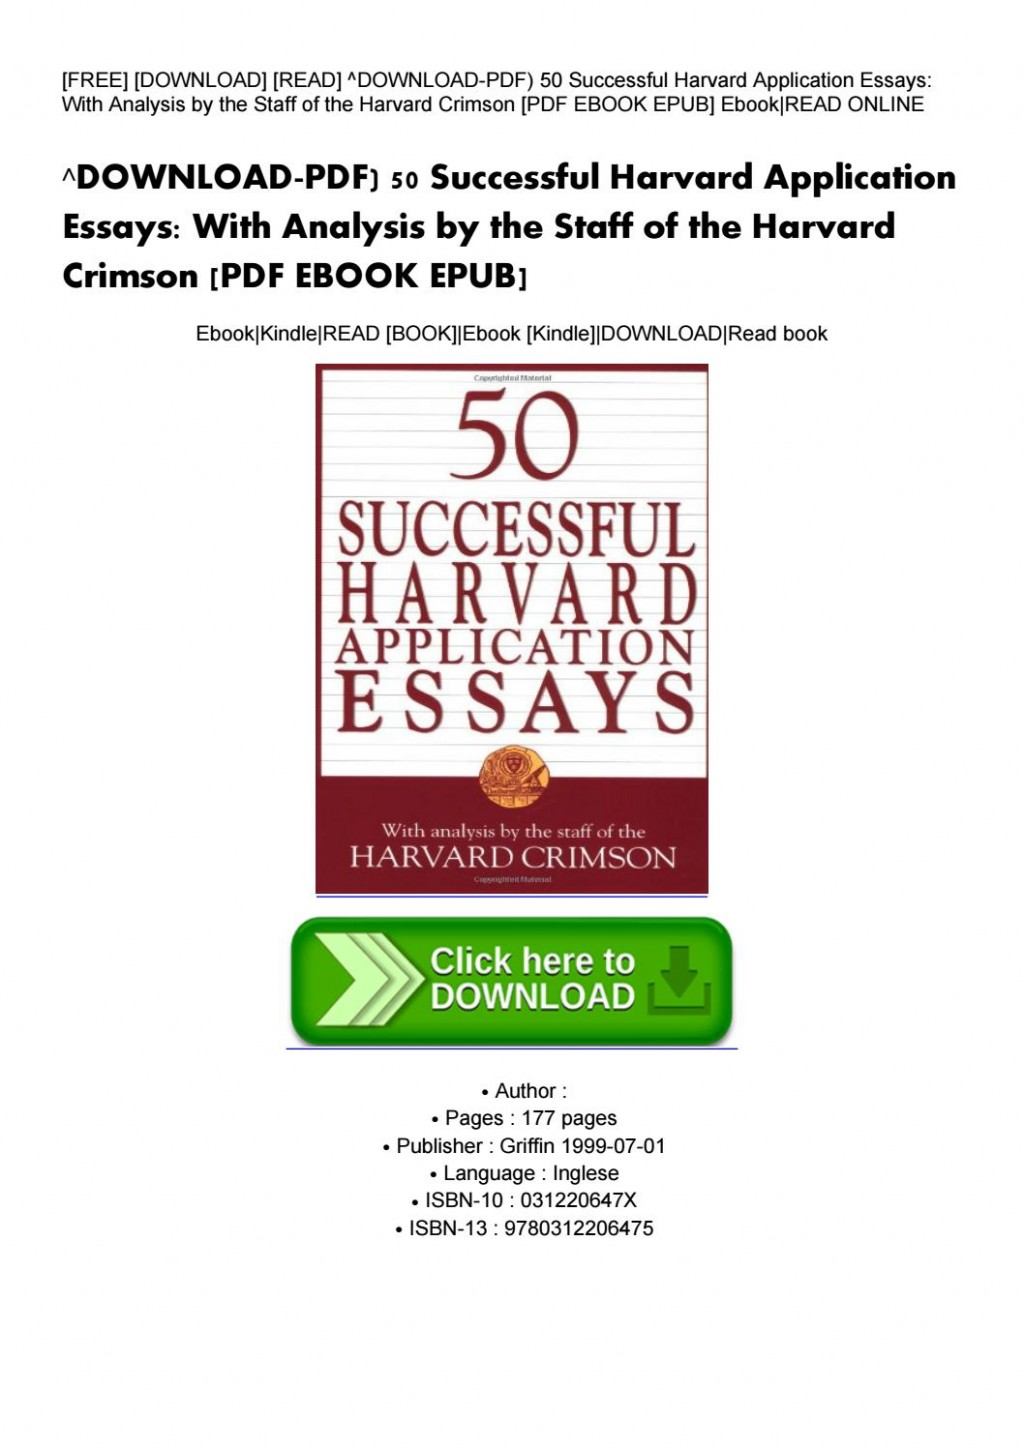 003 Essay Example Successful Harvard Application Essays Pdf Page 1 Impressive 50 Free Download Large